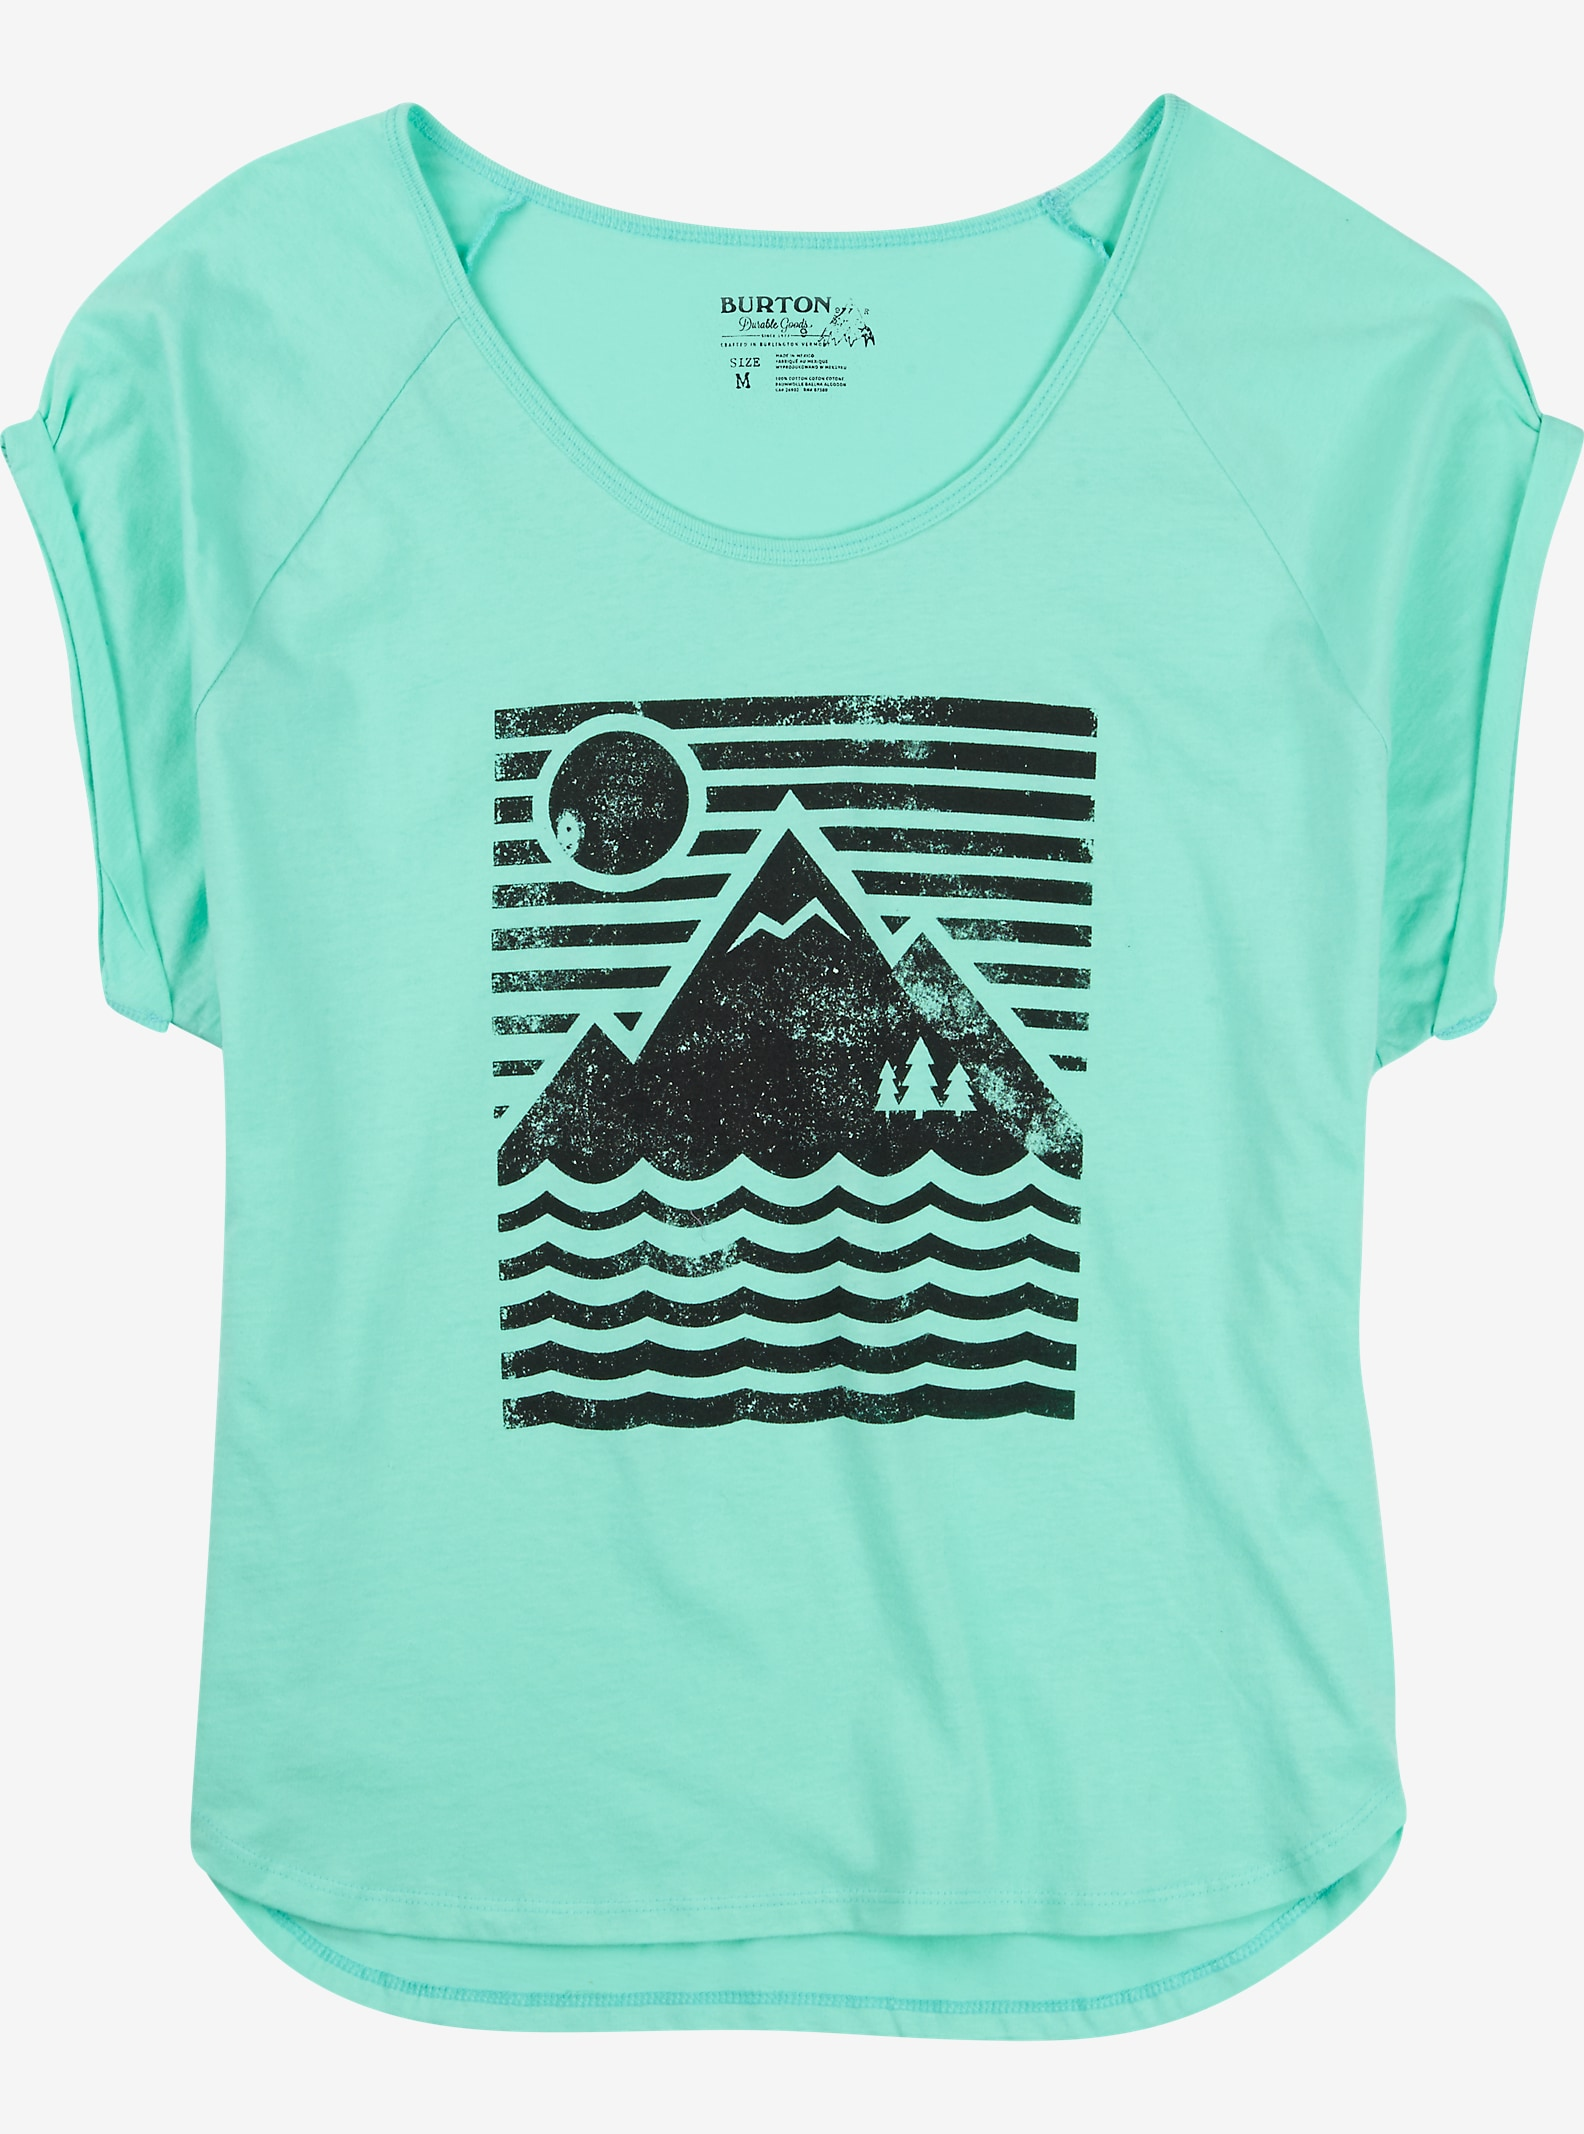 Burton Mountain Sun Rollie Short Sleeve T Shirt shown in Mint